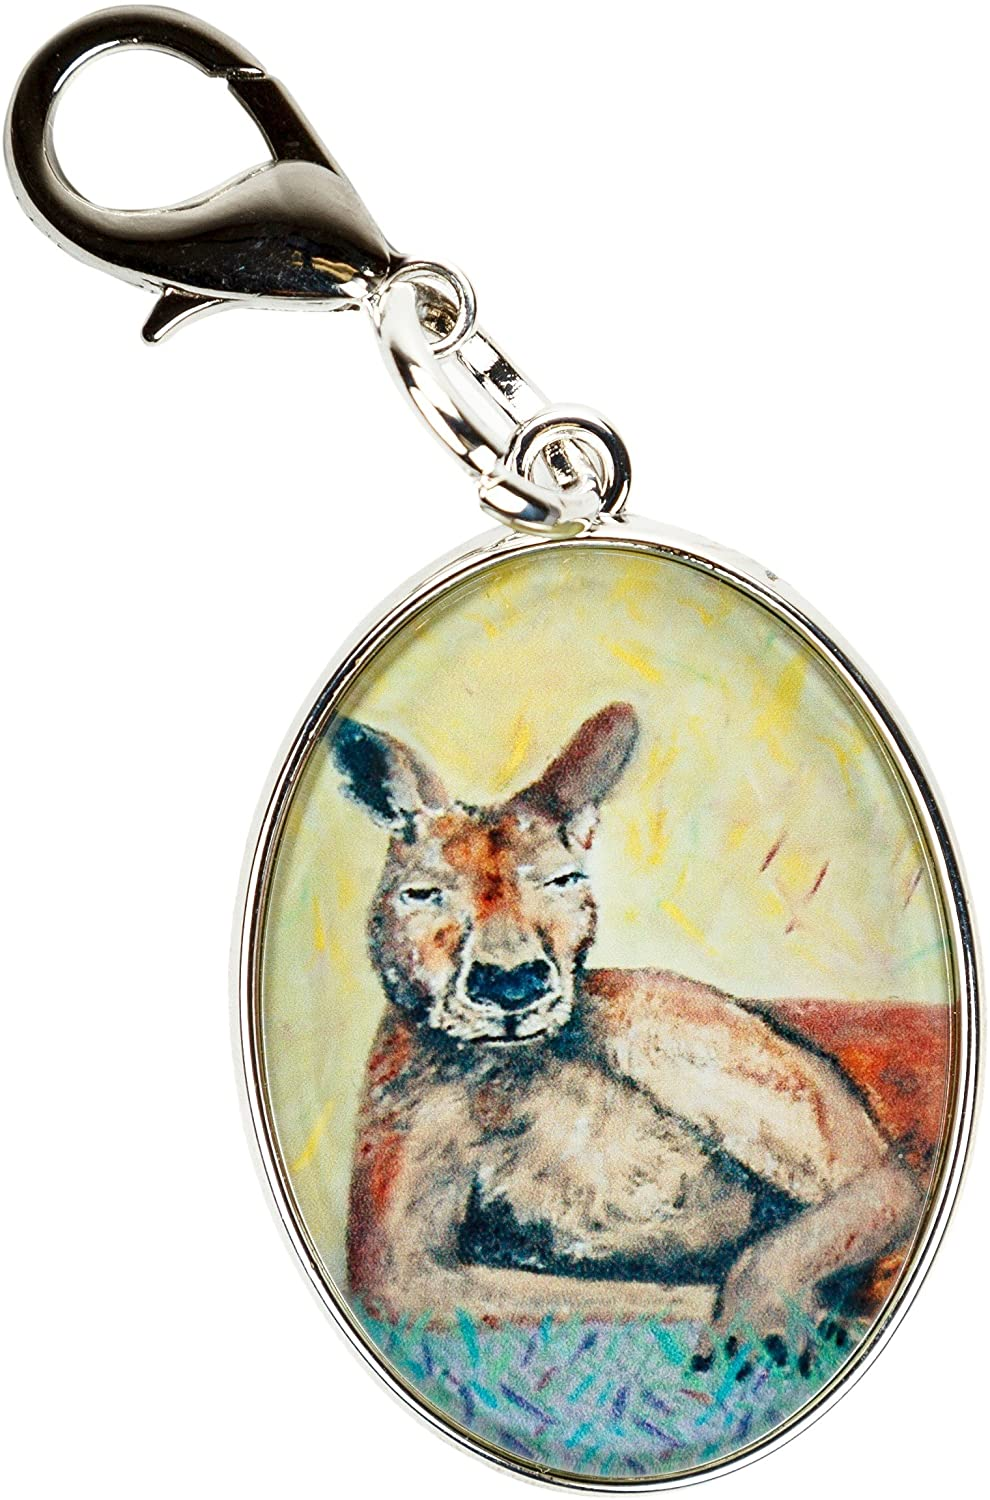 Animal Bag Charm with Lobster Claw Clasp, Zipper Pull, Purse Charm - Bag Jewelry